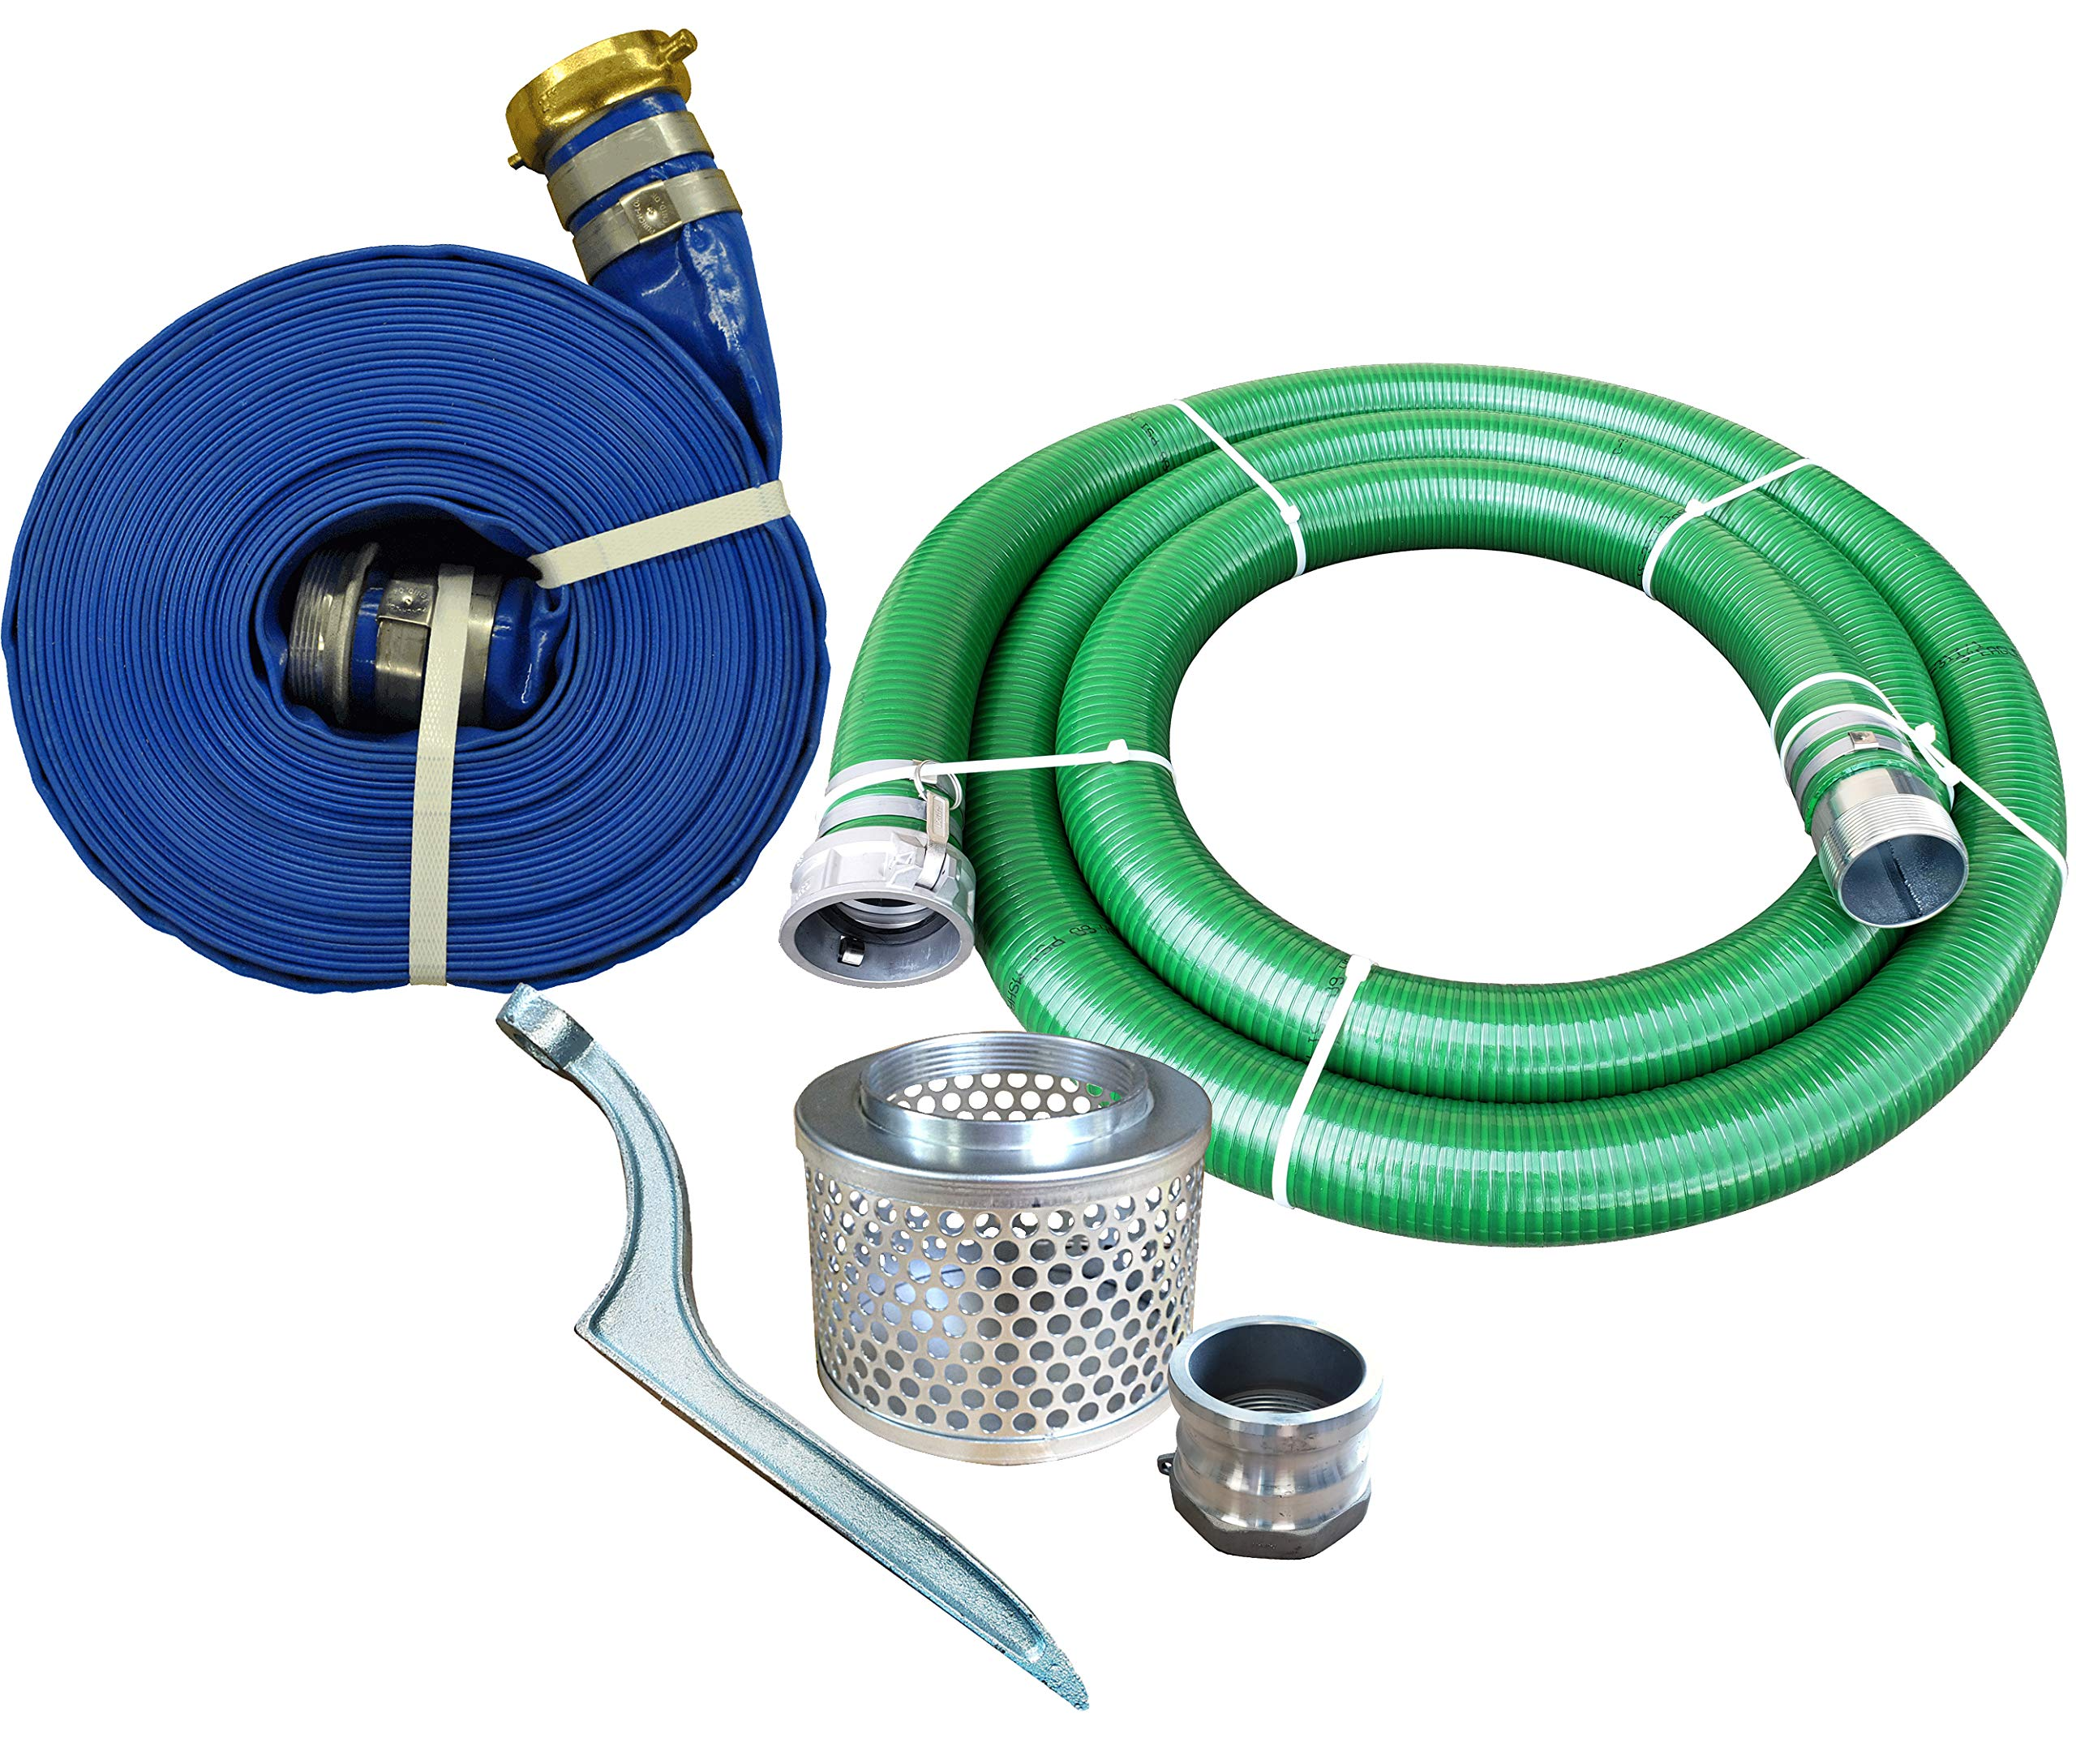 JGB Enterprises Eagle Hose PVC/Aluminum Water/Trash Pump Hose Kit, 4'' Green Suction Hose Coupled C x KCN, 4'' Blue Discharge Hose Coupled M x F WS, 29 Vacuum Rating, 70 PSI Maximum Temperature, 50' Length, 4 ID by JGB Enterprises